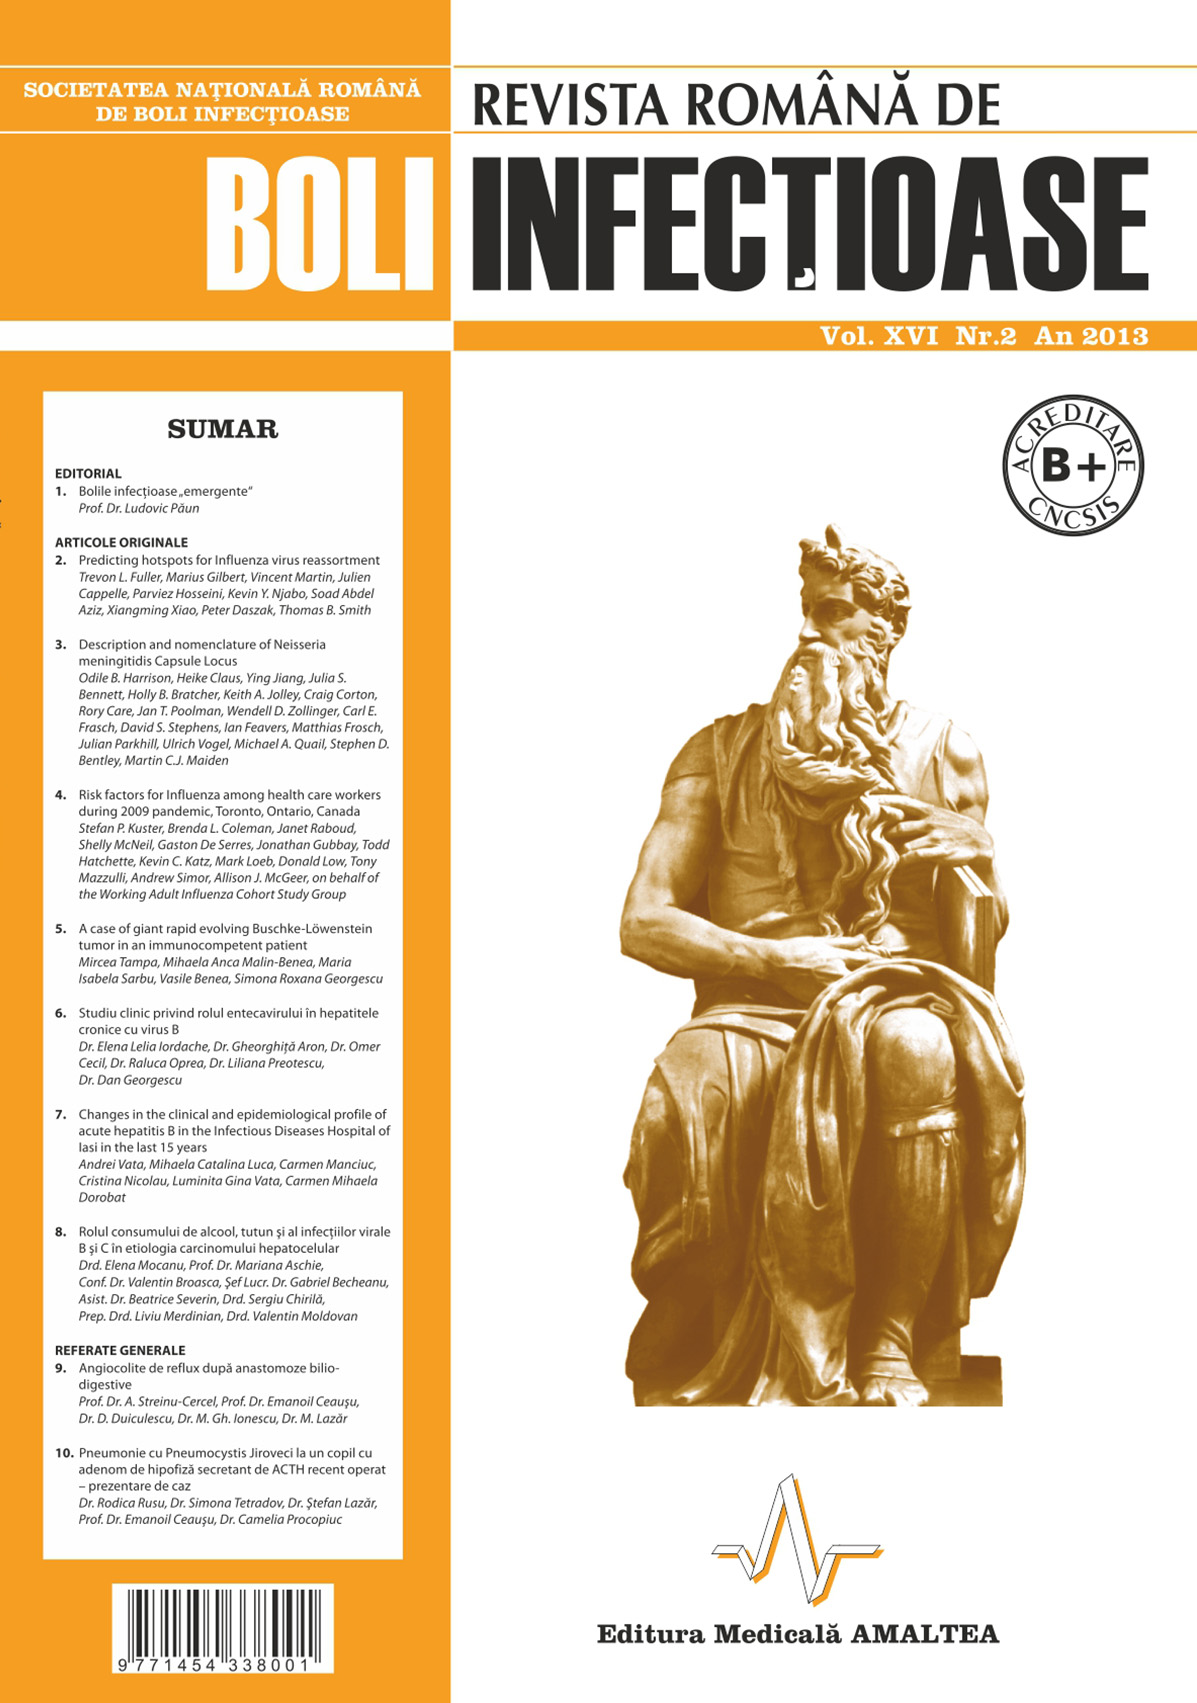 Revista Romana de Boli Infectioase | Vol. XVI, No. 2, 2013